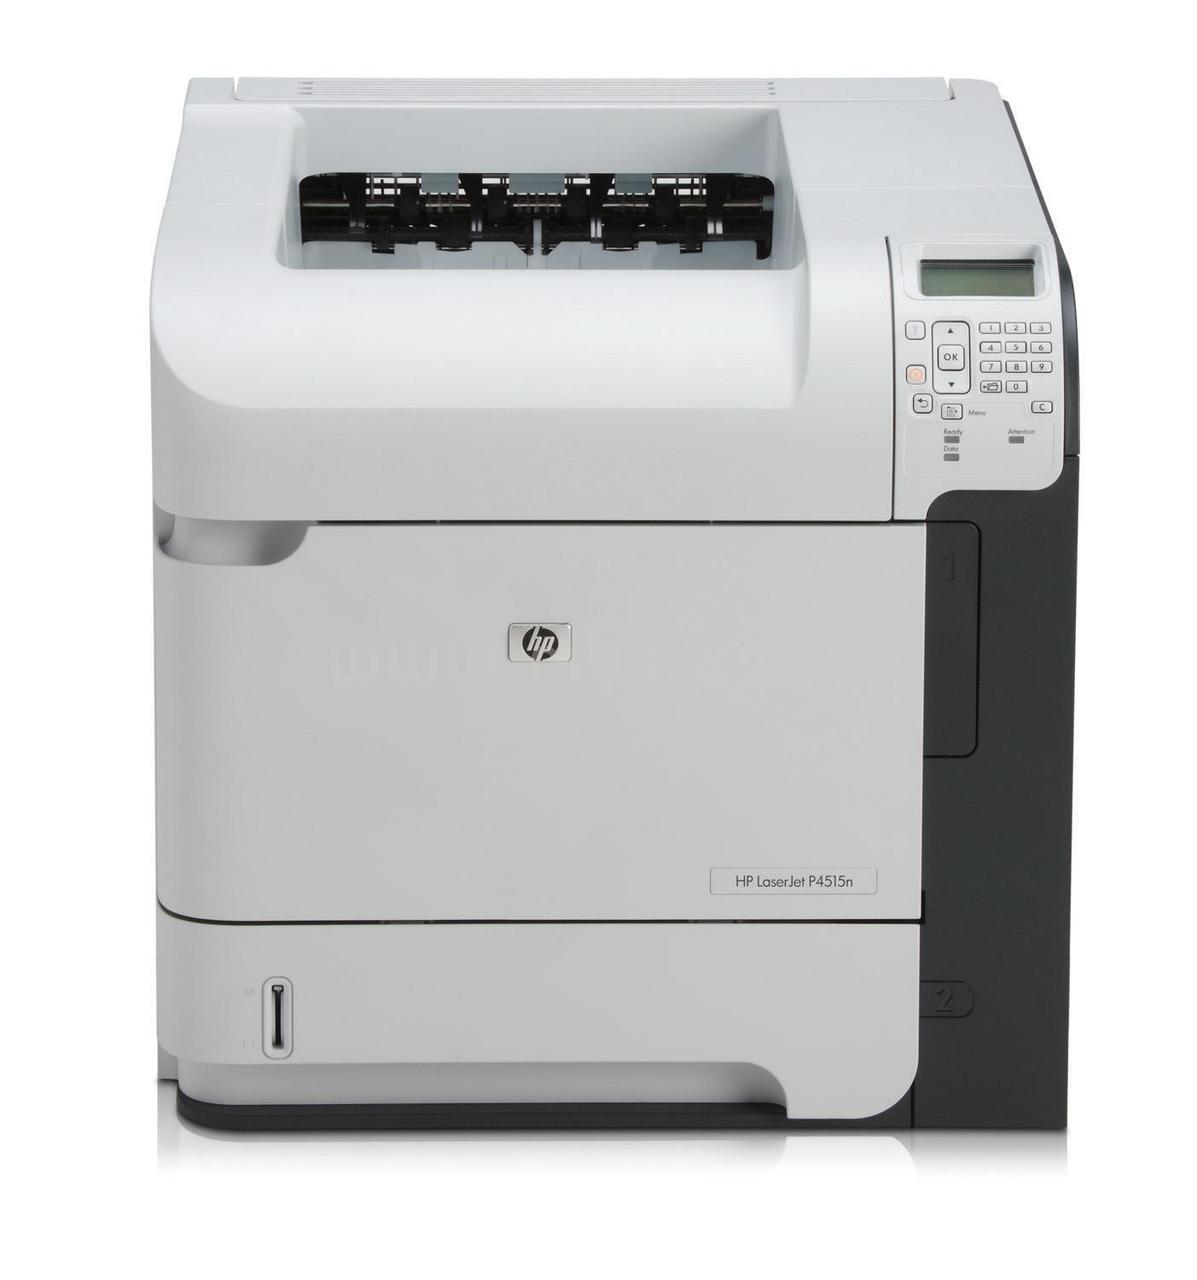 HP LaserJet P4515n - CB514A#ABU - HP Laser Printer for sale